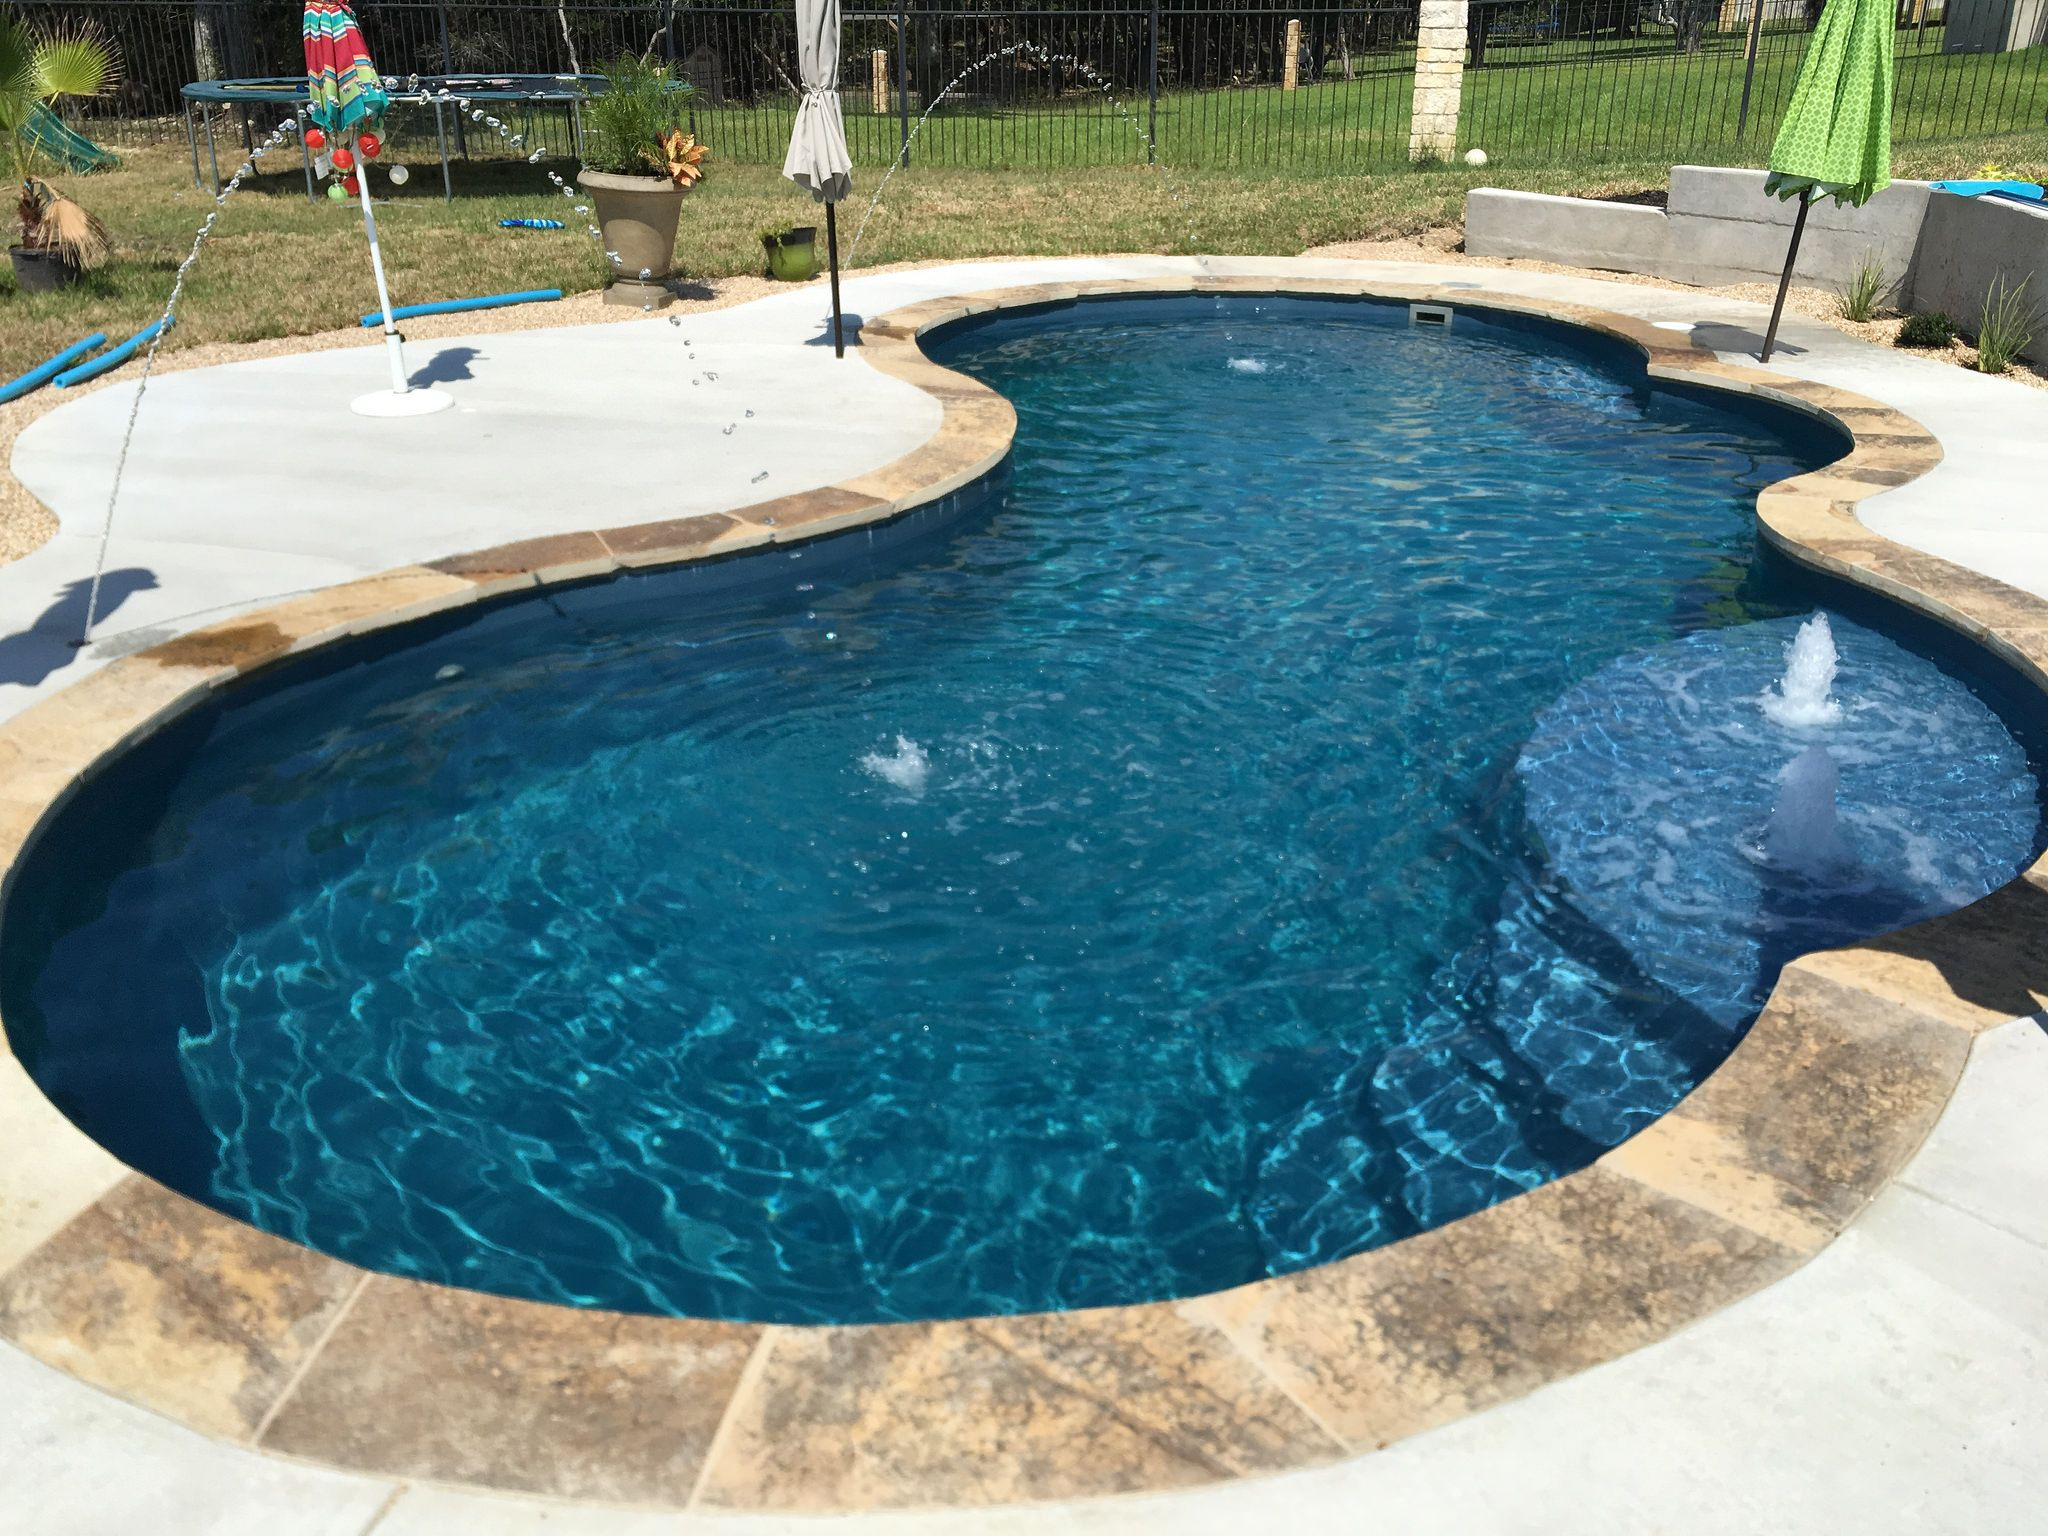 This 16 X 32 Gemini Shaped Fibergl Inground Pool Complete In Vega Color Sandstone Coping And Bubblers Is The Perfect Backyard Escape